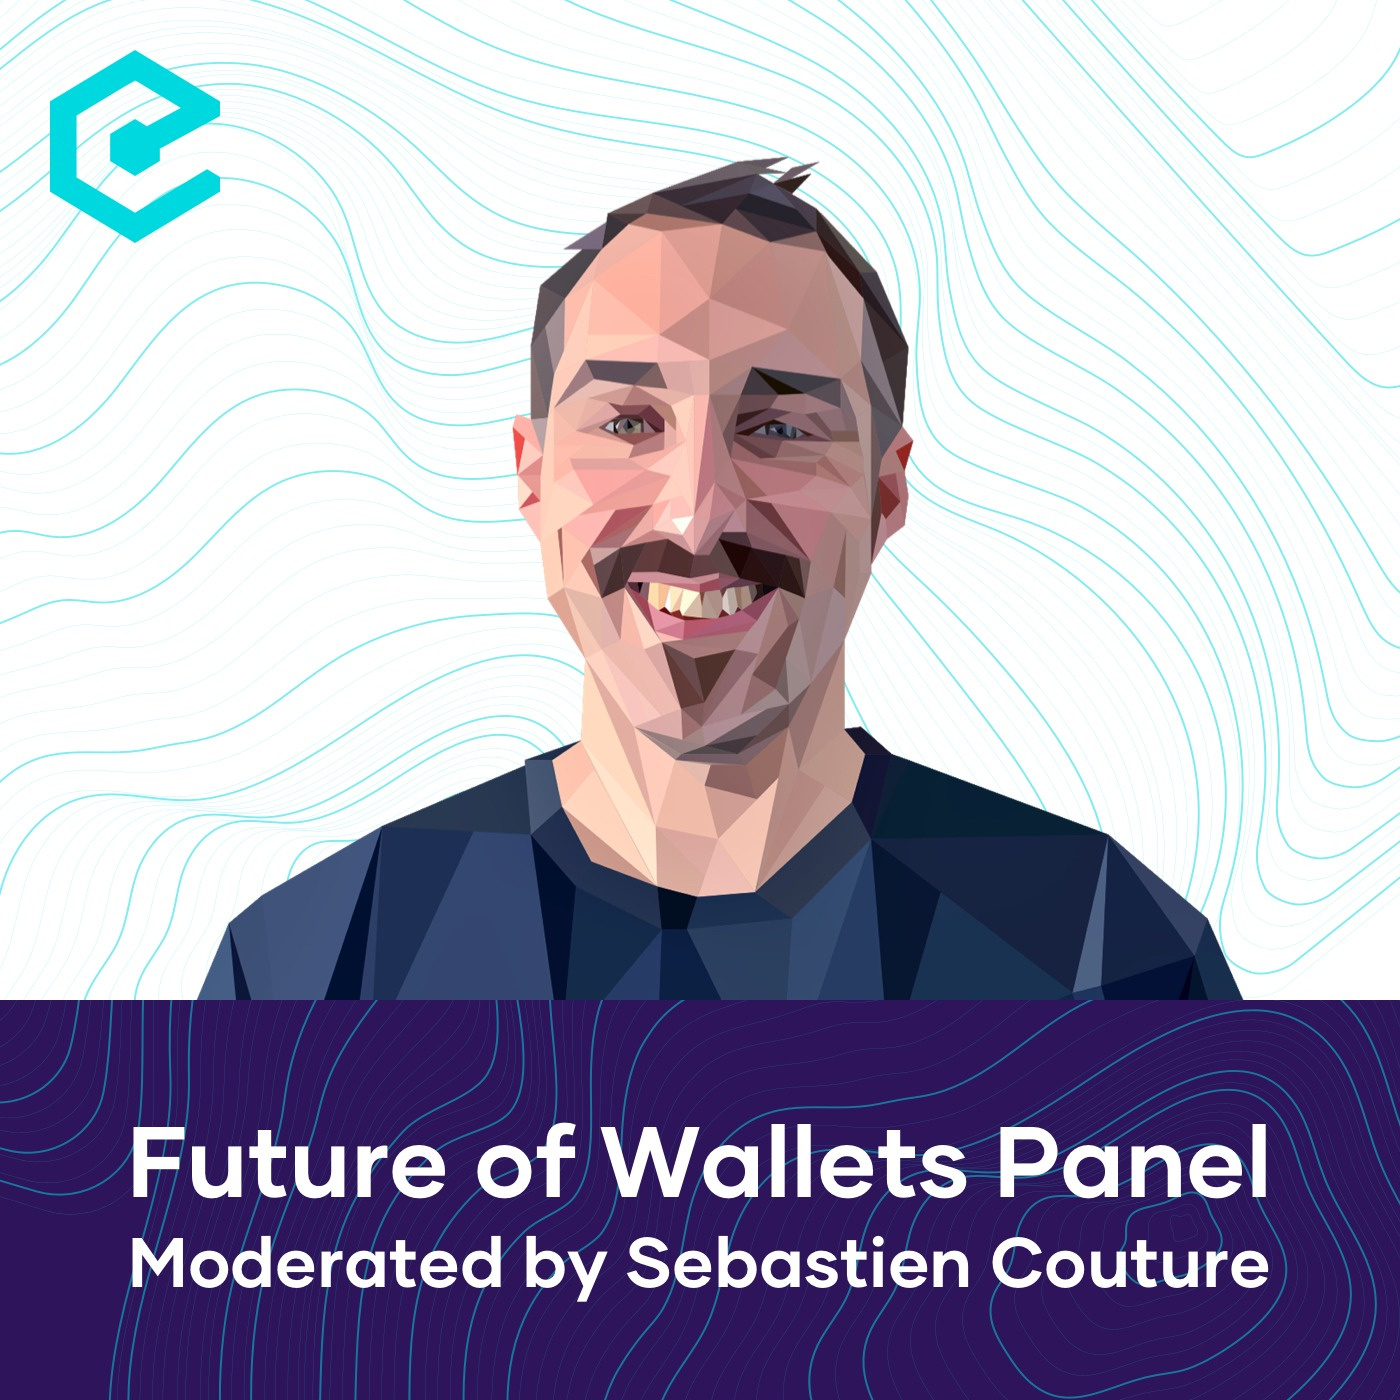 Increasing Wallet Usability to Decrease the Anxiety of Self-Custody